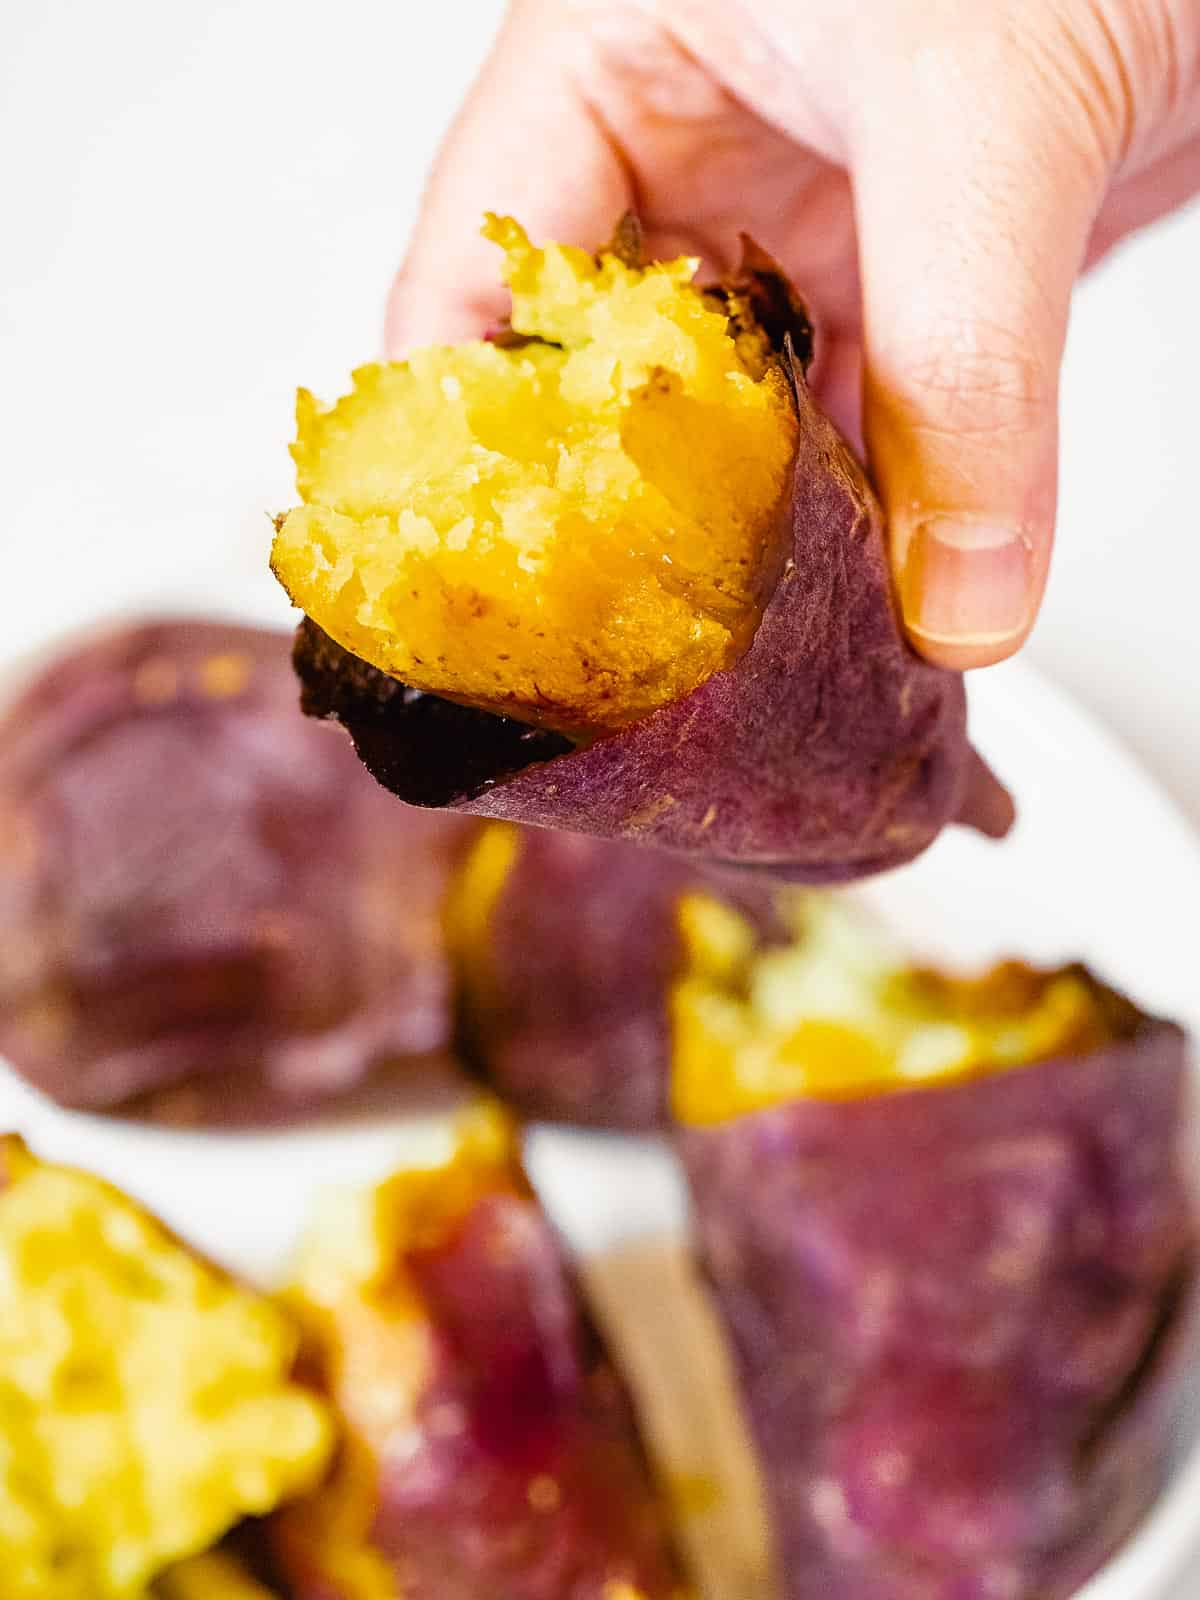 Hand holding a roasted Korean sweet potato baked until soft and fluffy.